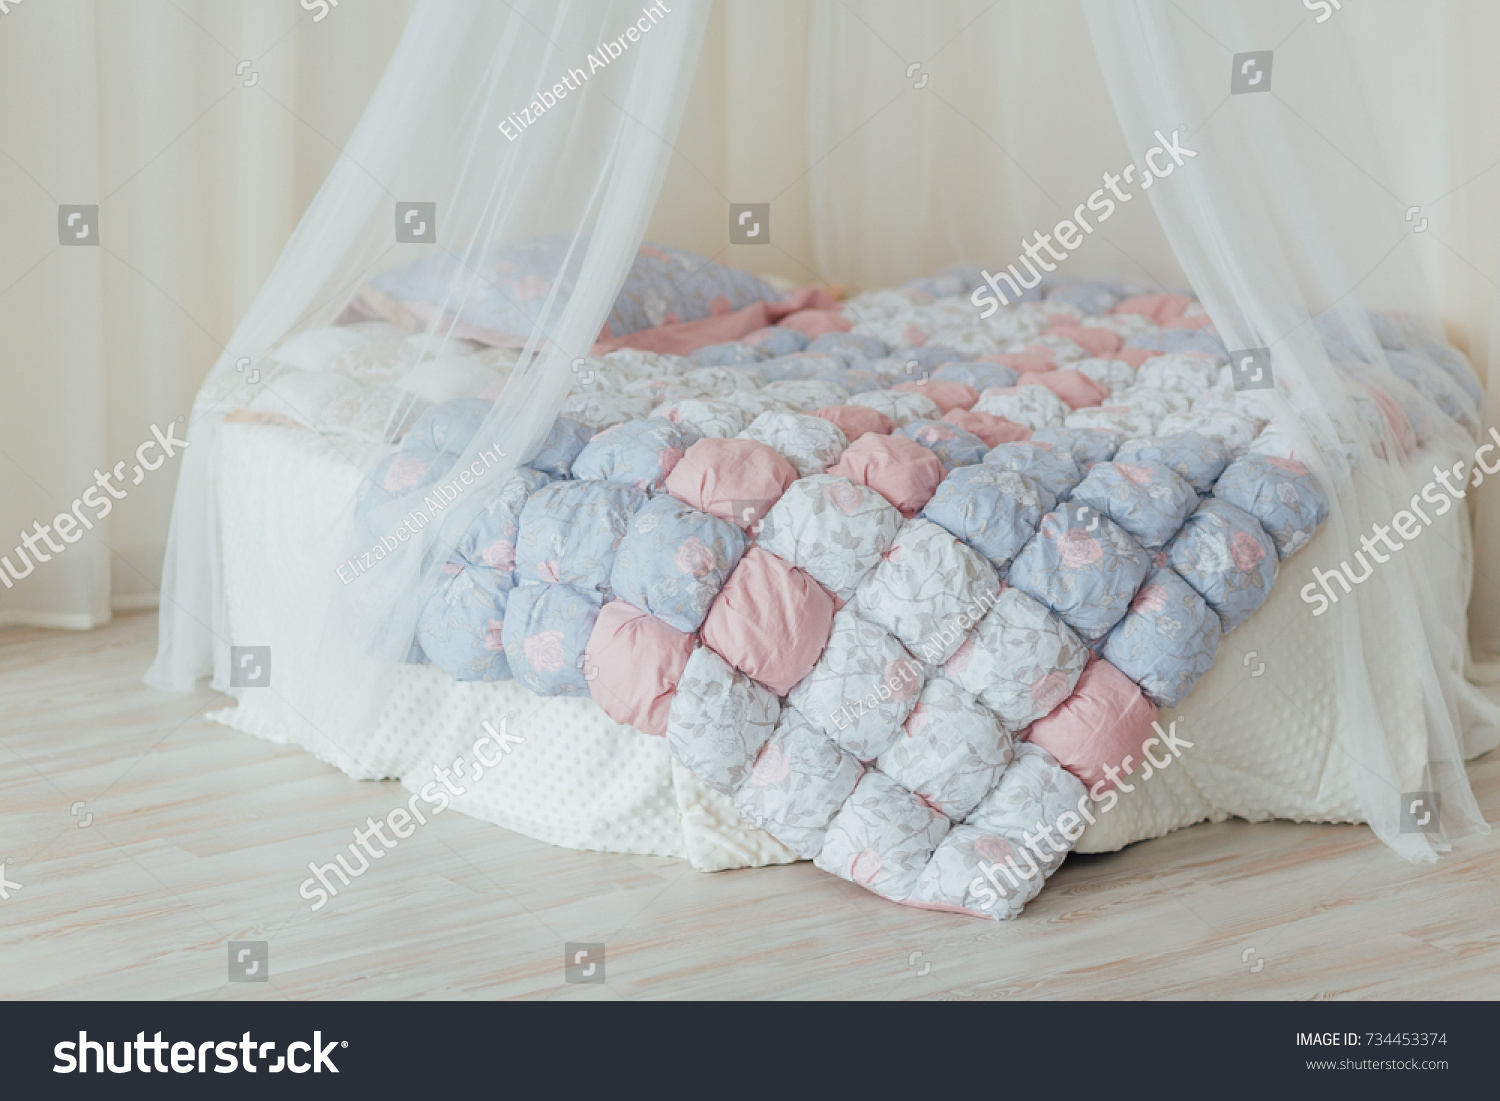 Uncategorized Round Bed With Canopy round bed canopy stock photo 734453374 shutterstock with canopy